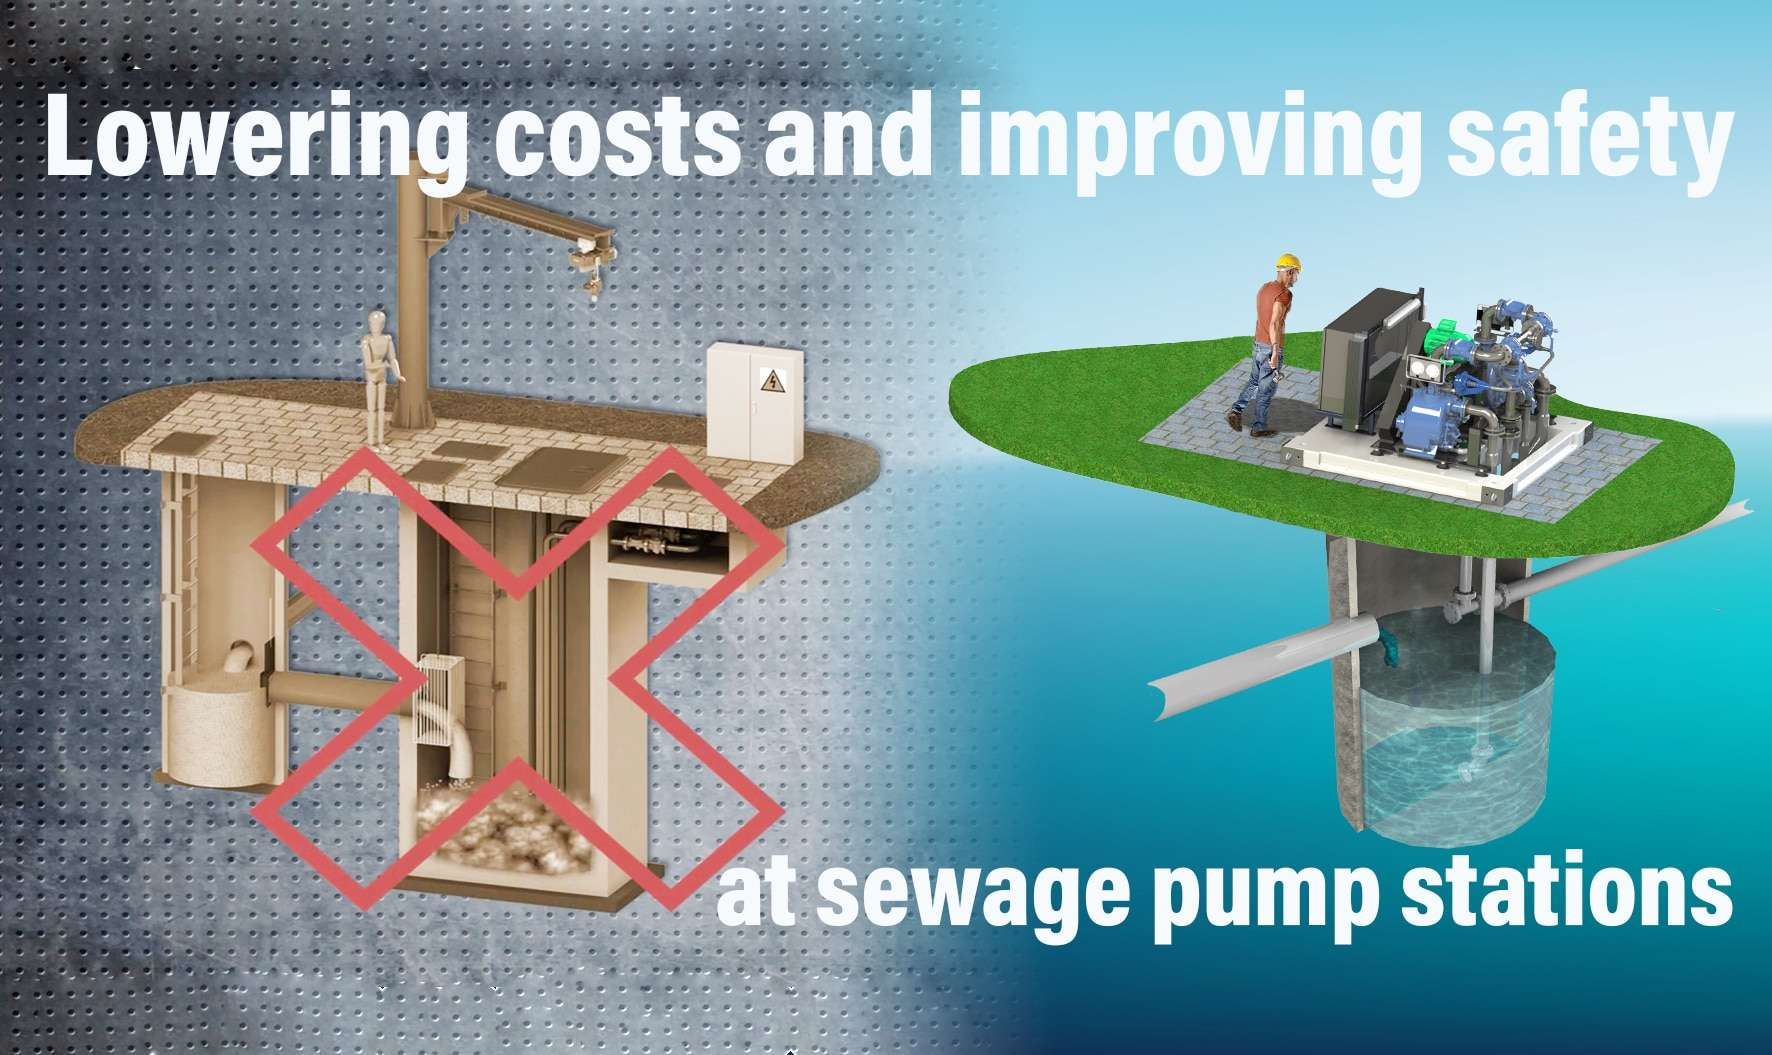 Advantages of above ground self priming pumps in comparison to submersible pumps